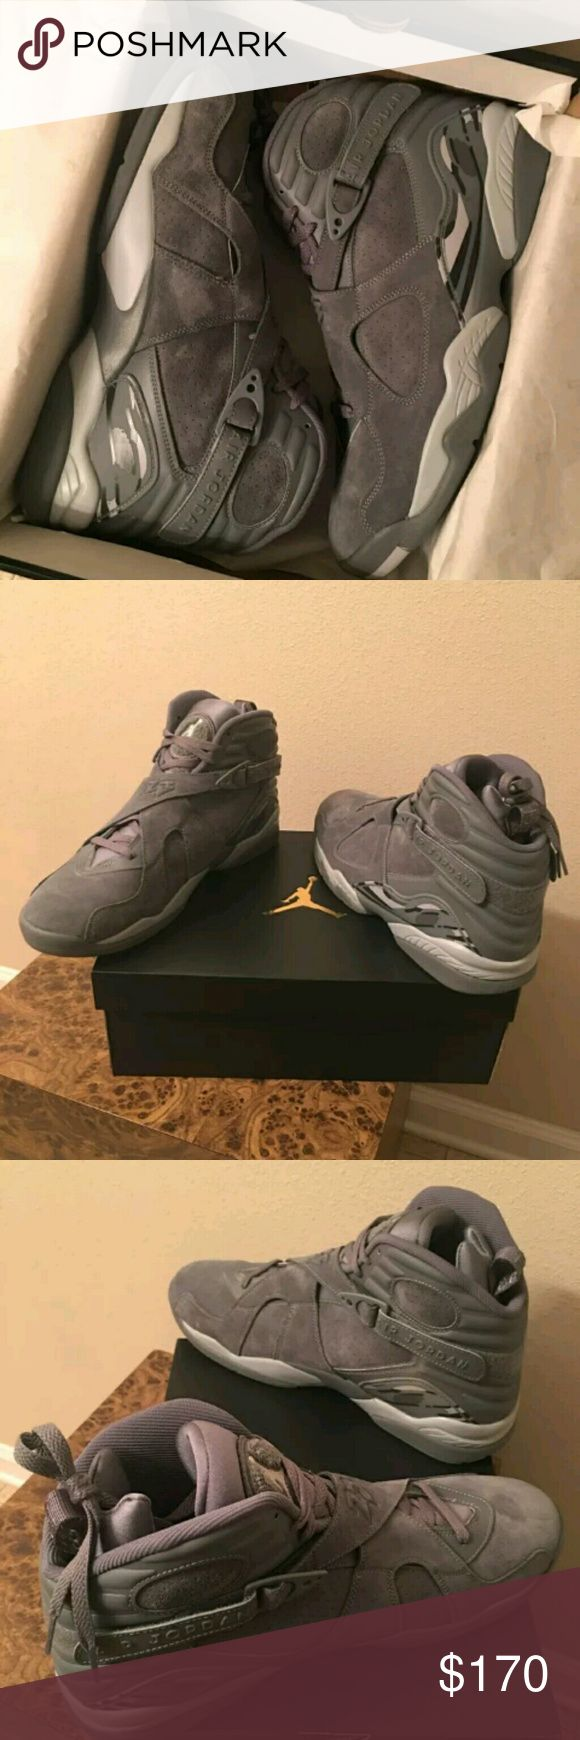 Air Jordan Retro 8 Suede Cool Grey Wolf Grey DS Deadstock And Brand New w/ Box. Price is highly negotiable if you buy today and Payment is not done thru Po$hmark. Texxt me ONLY when your READY TO PURCHASE 7 7 0 5 8 0 4 8 7 8 Jordan Shoes Athletic Shoes